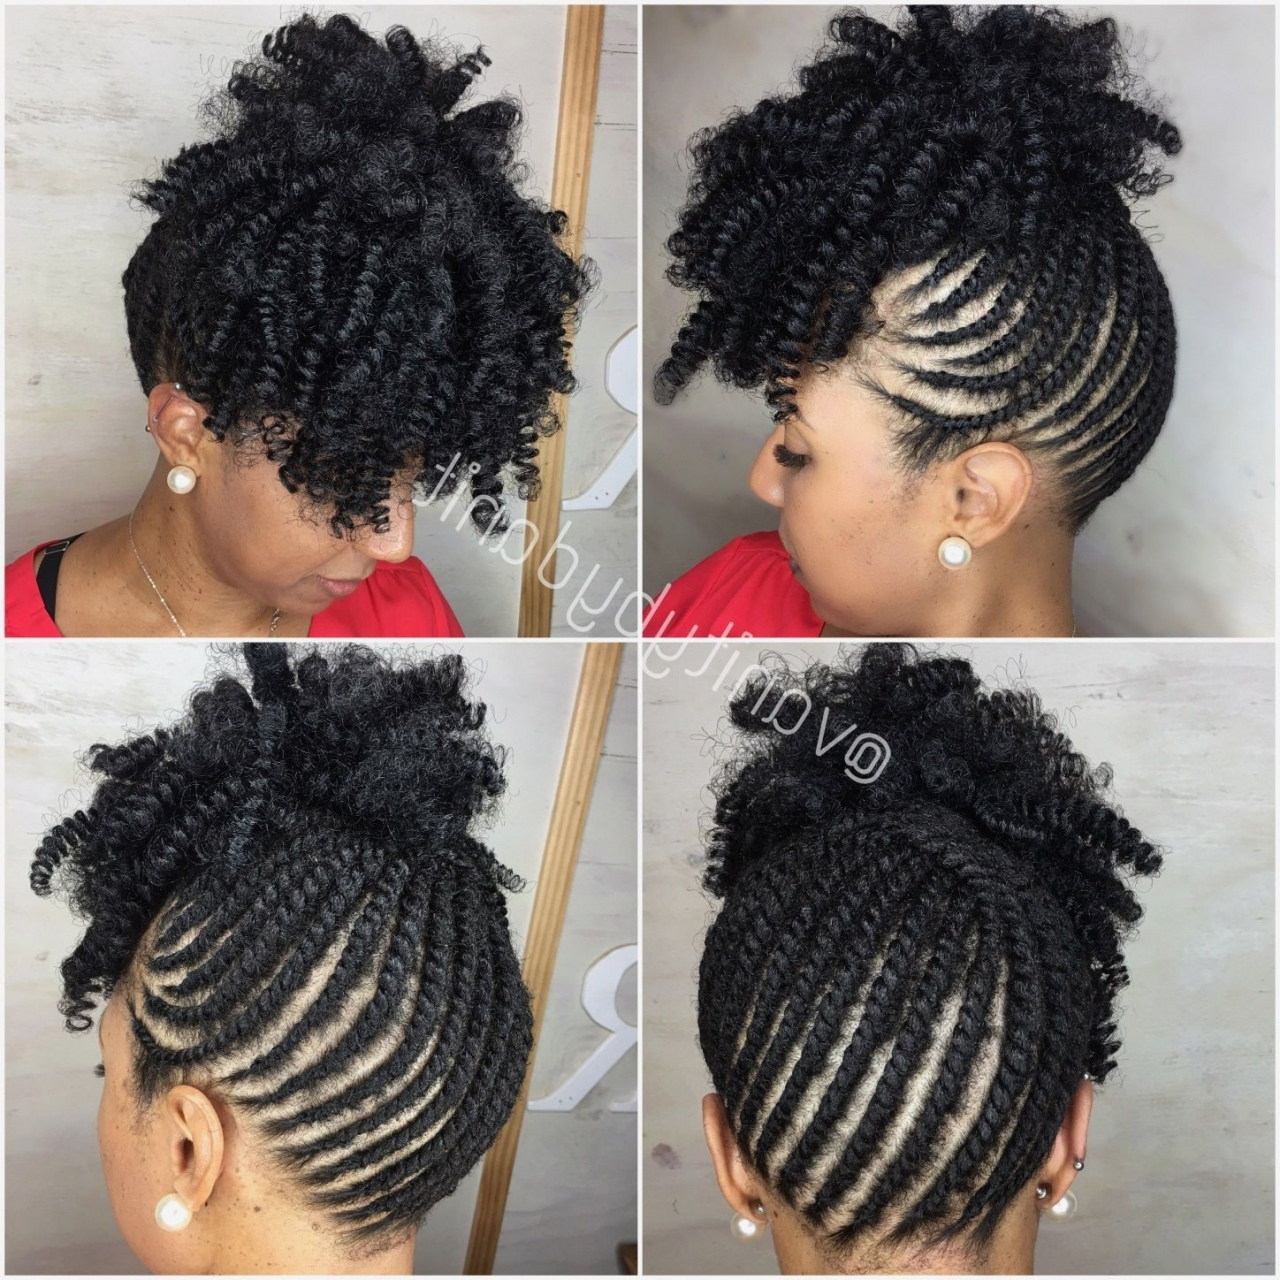 77 Natural African American Hairstyles Unique Stunning Braided Throughout Fashionable Braided Hairstyles On Short Natural Hair (View 2 of 15)